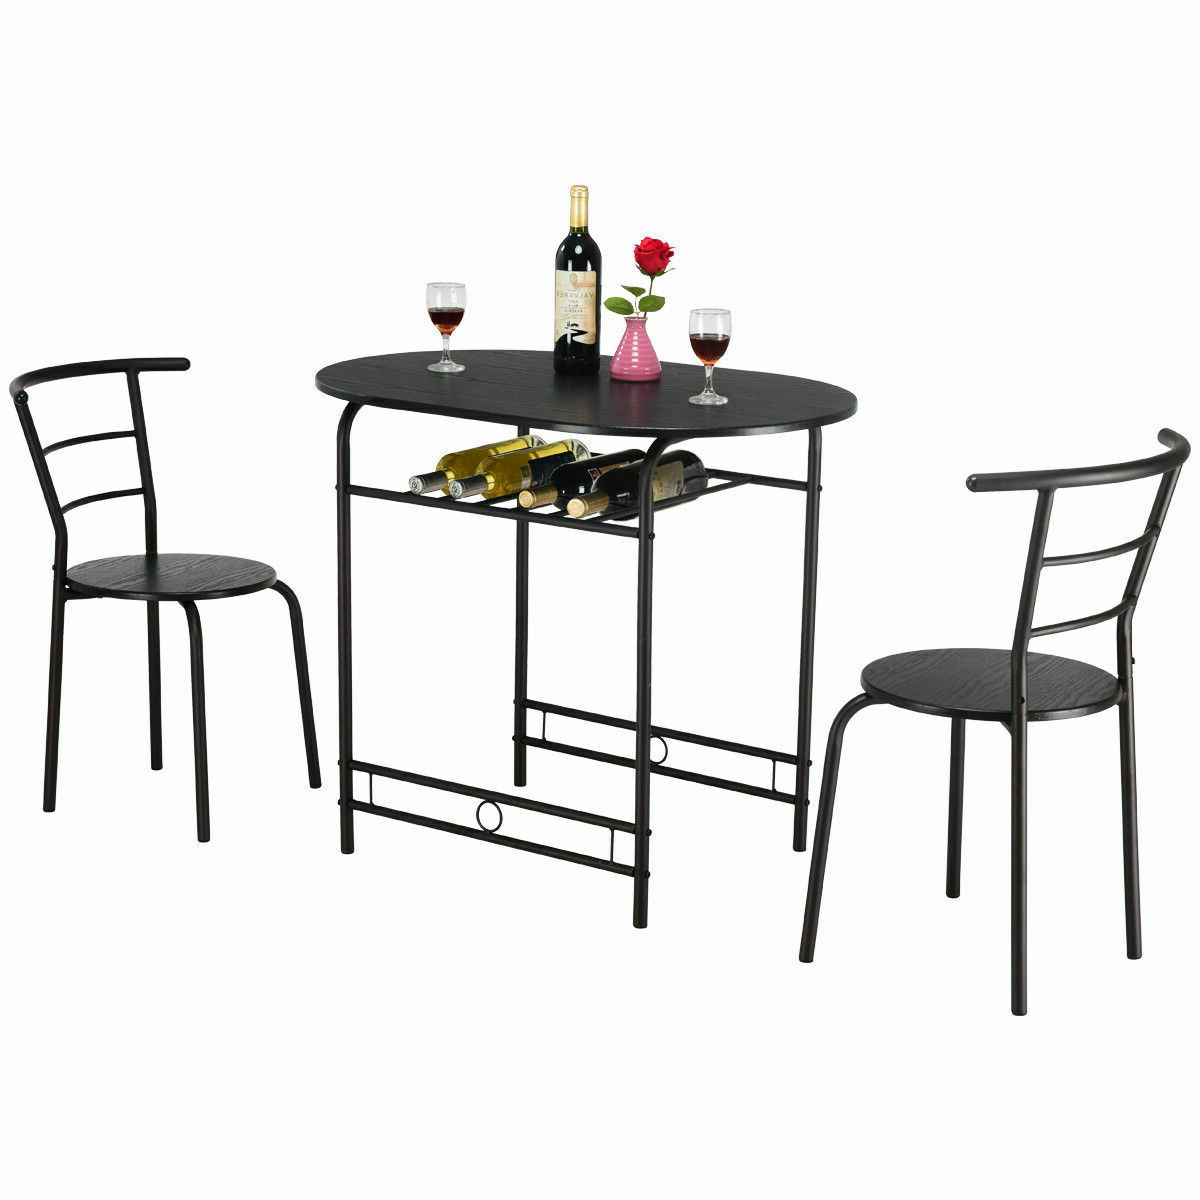 3 Pcs Dining Table Set W/1 Table And 2 Chairs Home With Best And Newest 3 Pieces Dining Tables And Chair Set (View 3 of 30)